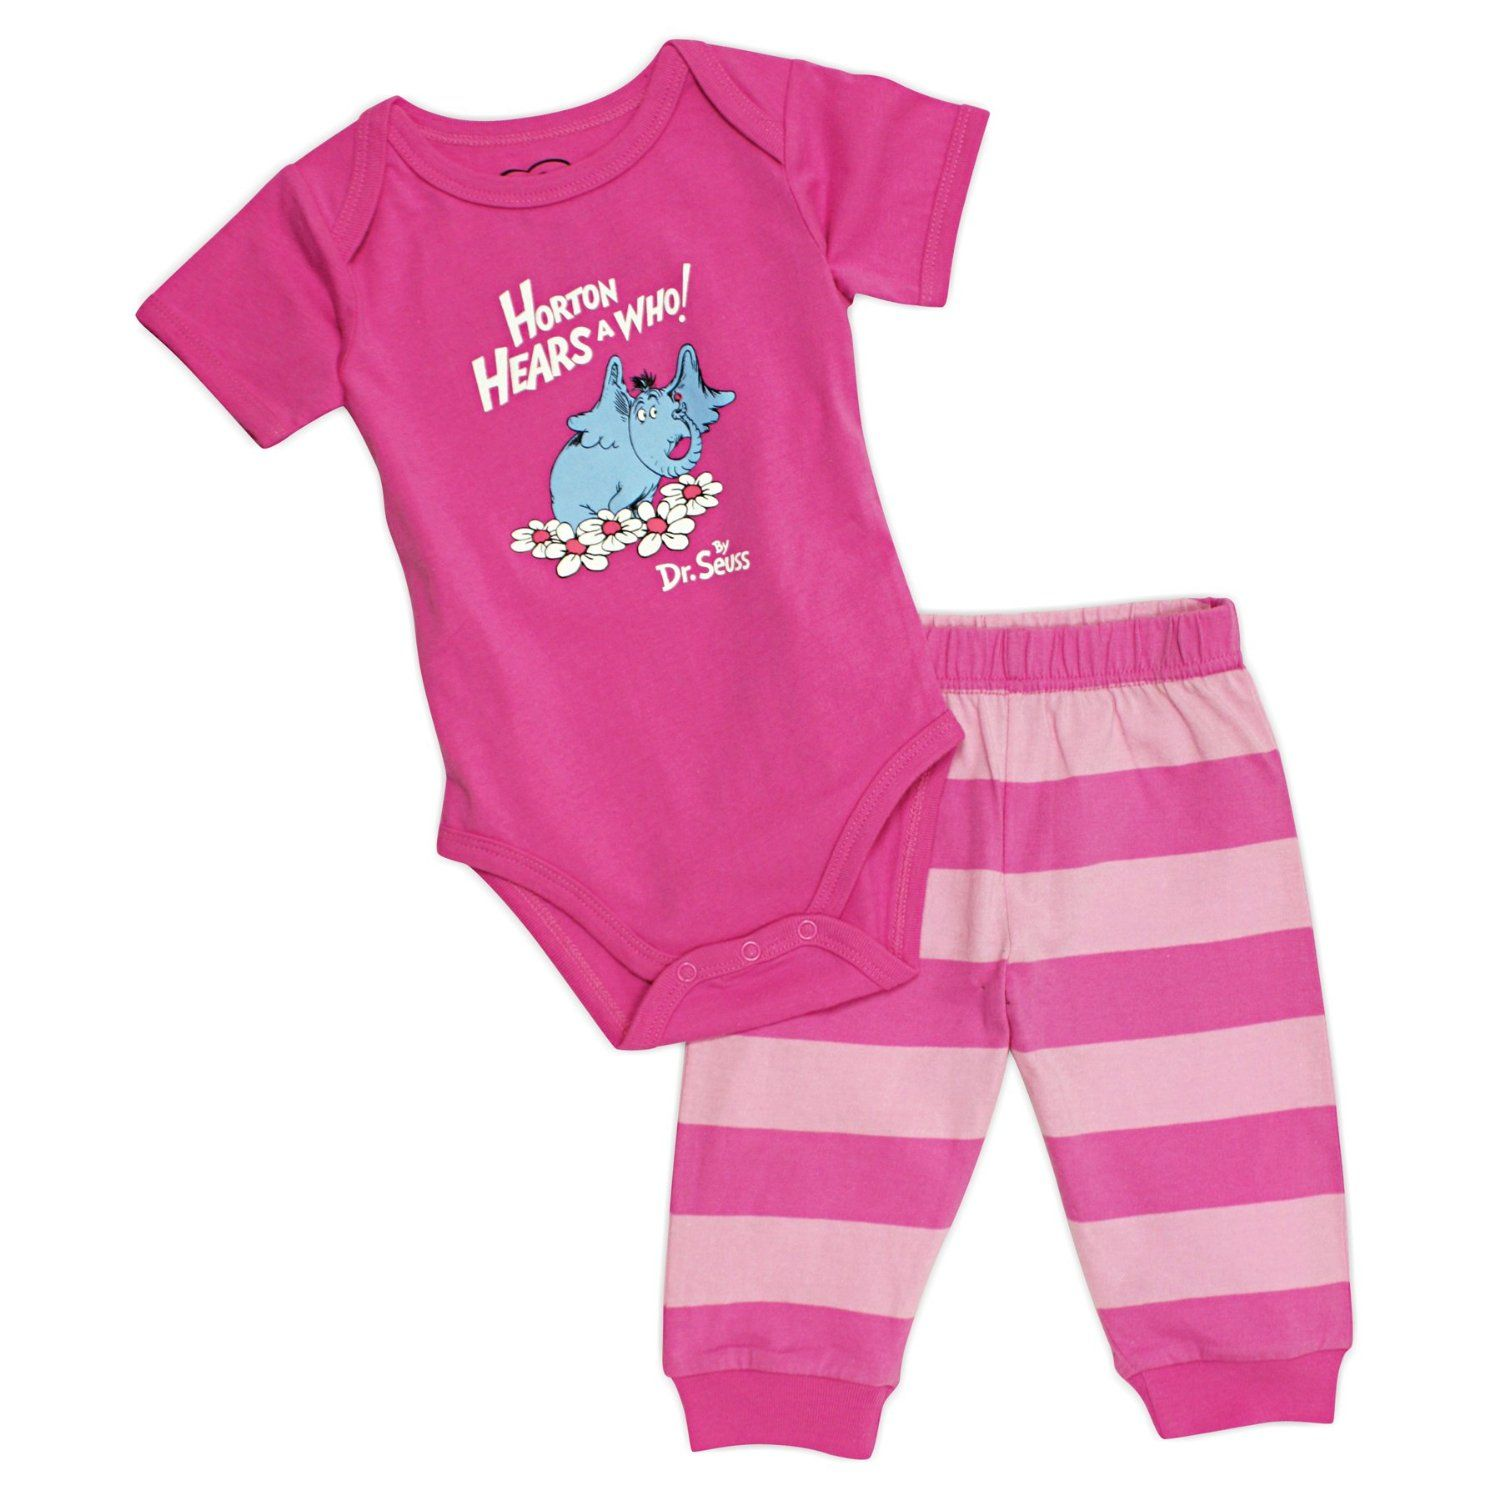 baby clothing on sale - Kids Clothes Zone